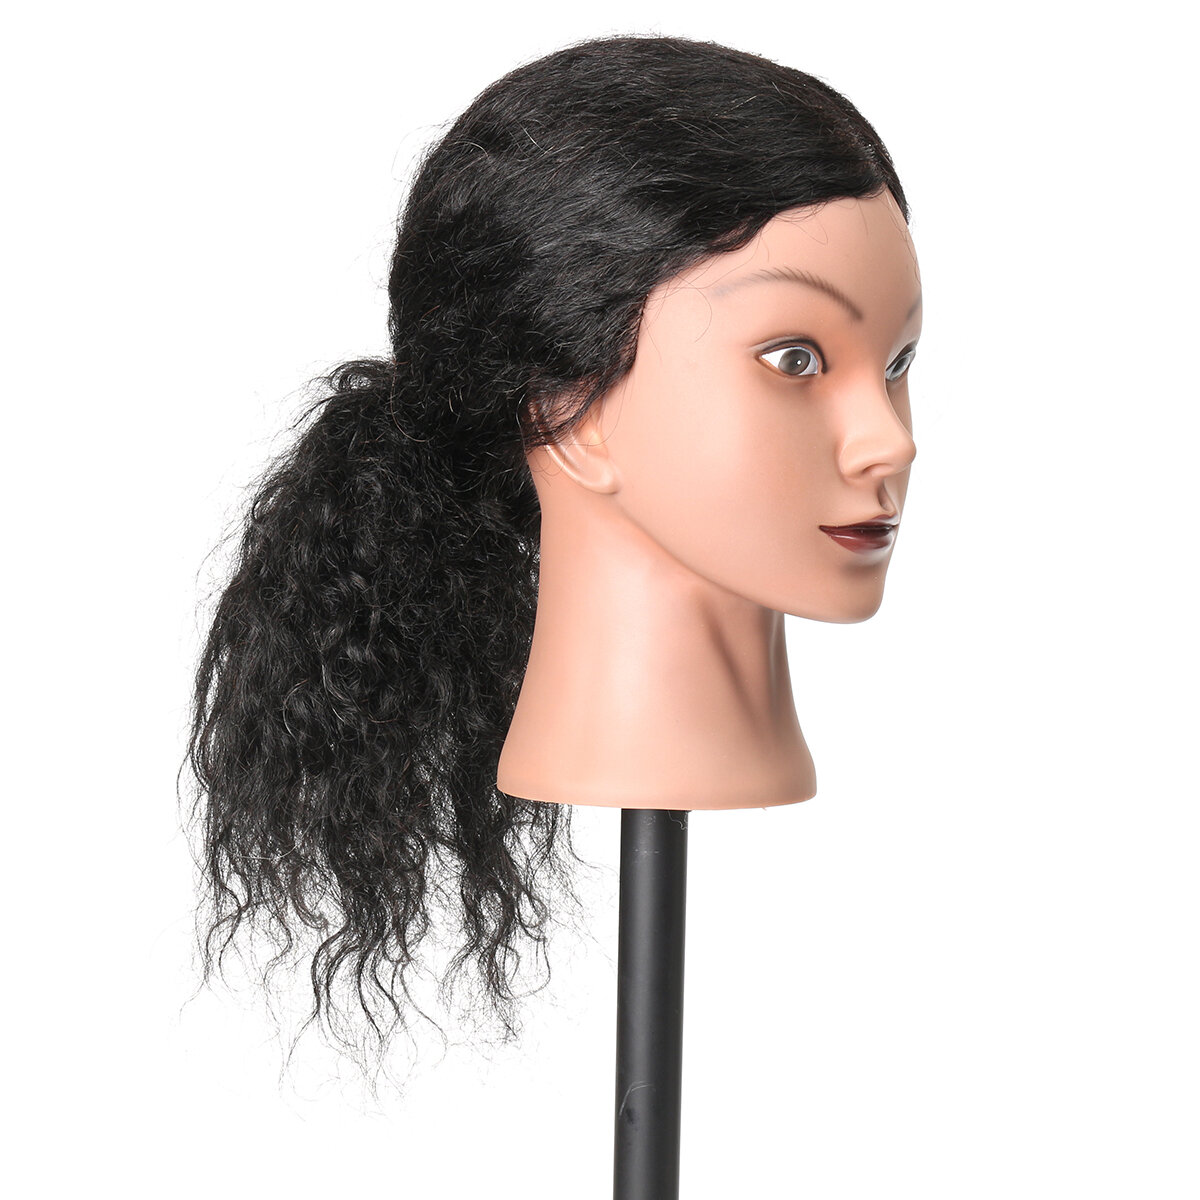 Female Plastic Mannequin Head Wig Hair Display Model Stand 3 Colors - 8